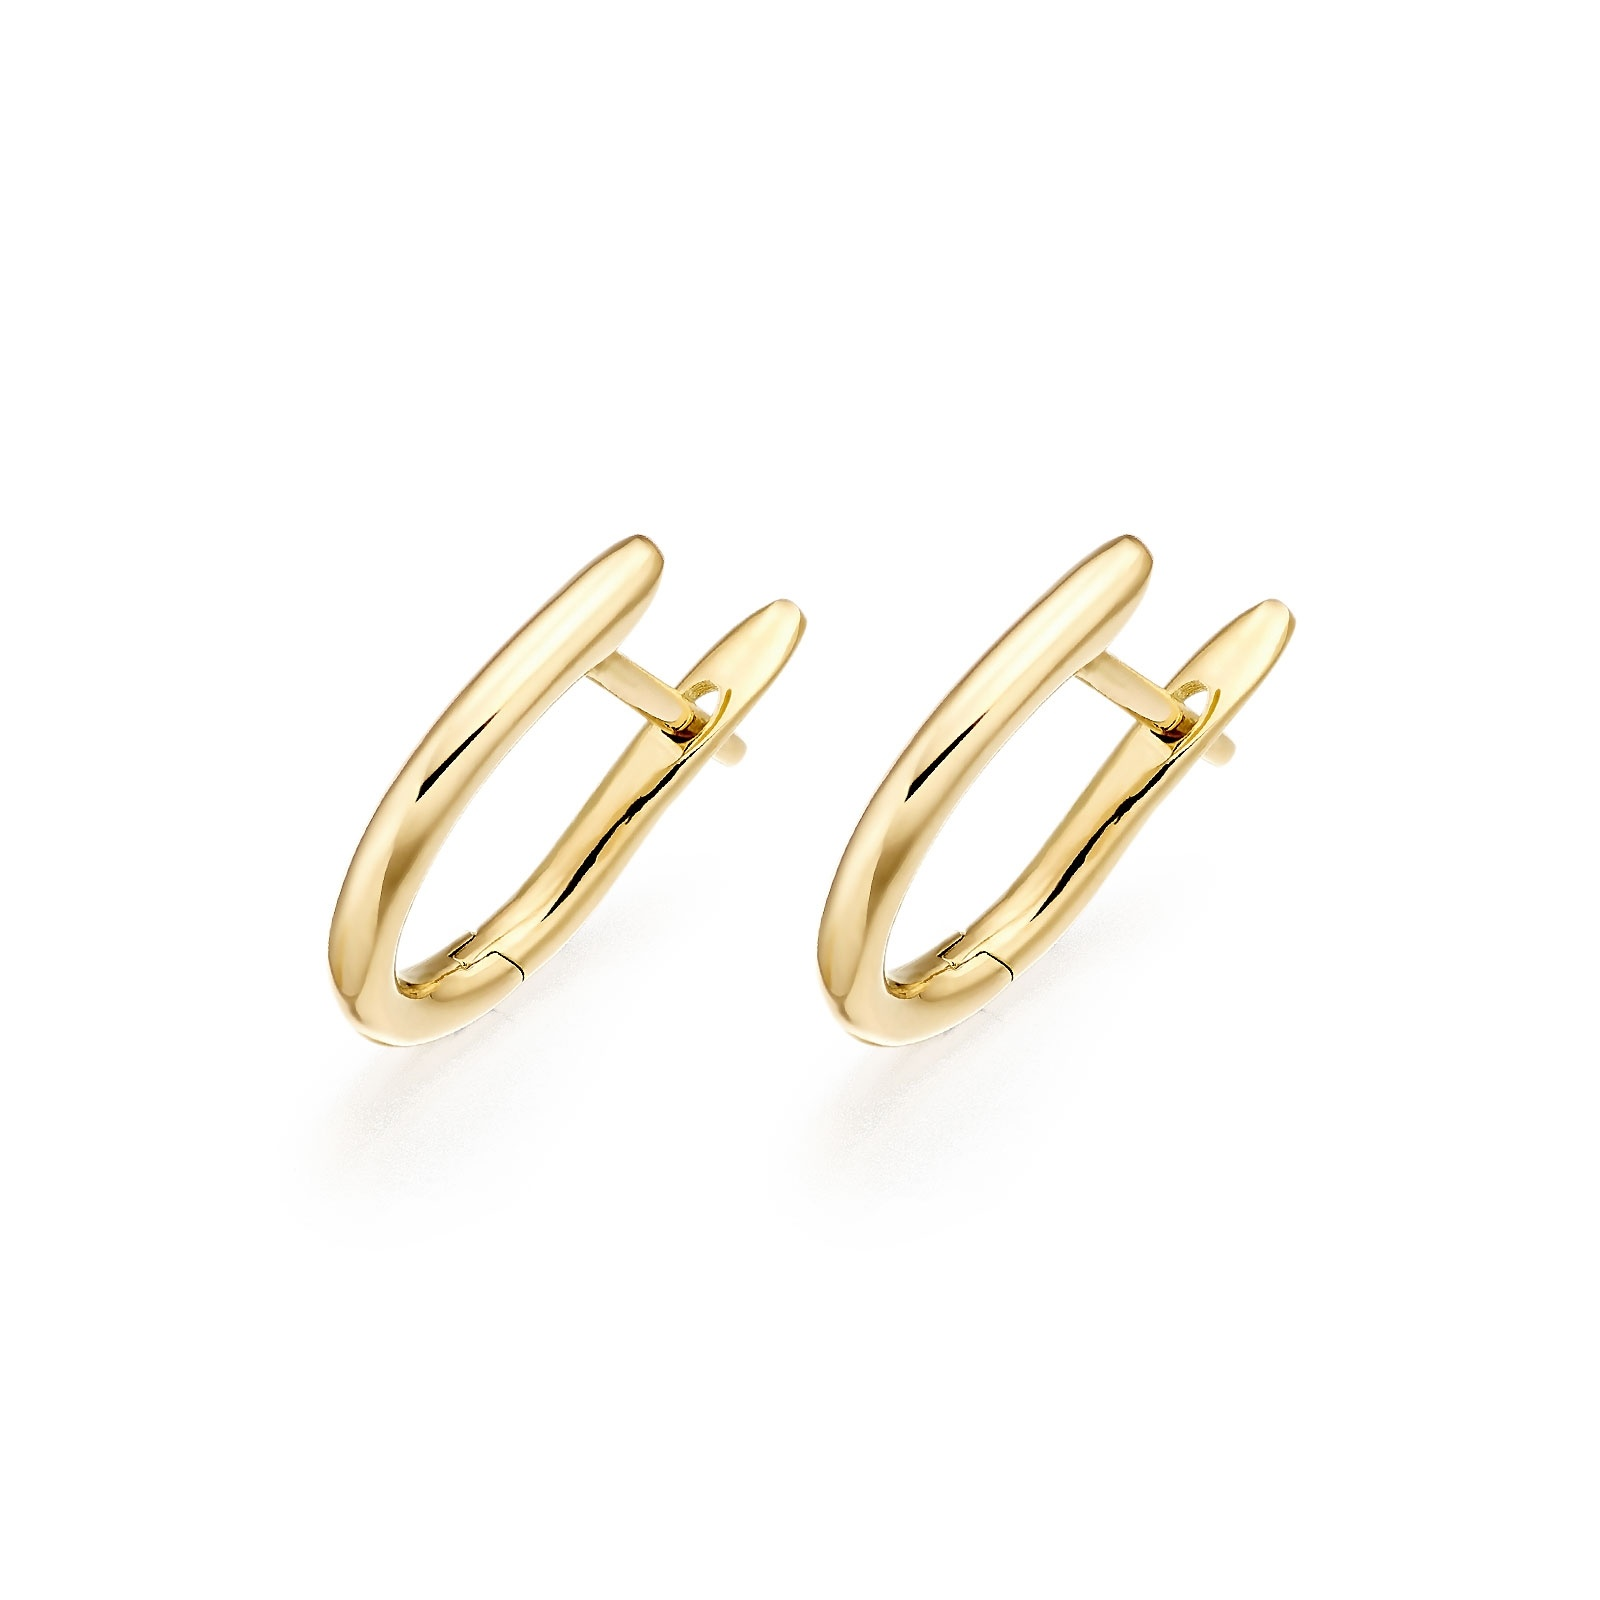 Yellow Gold Huggie Earrings with Akoya Pearls-AEWRYG1249-1